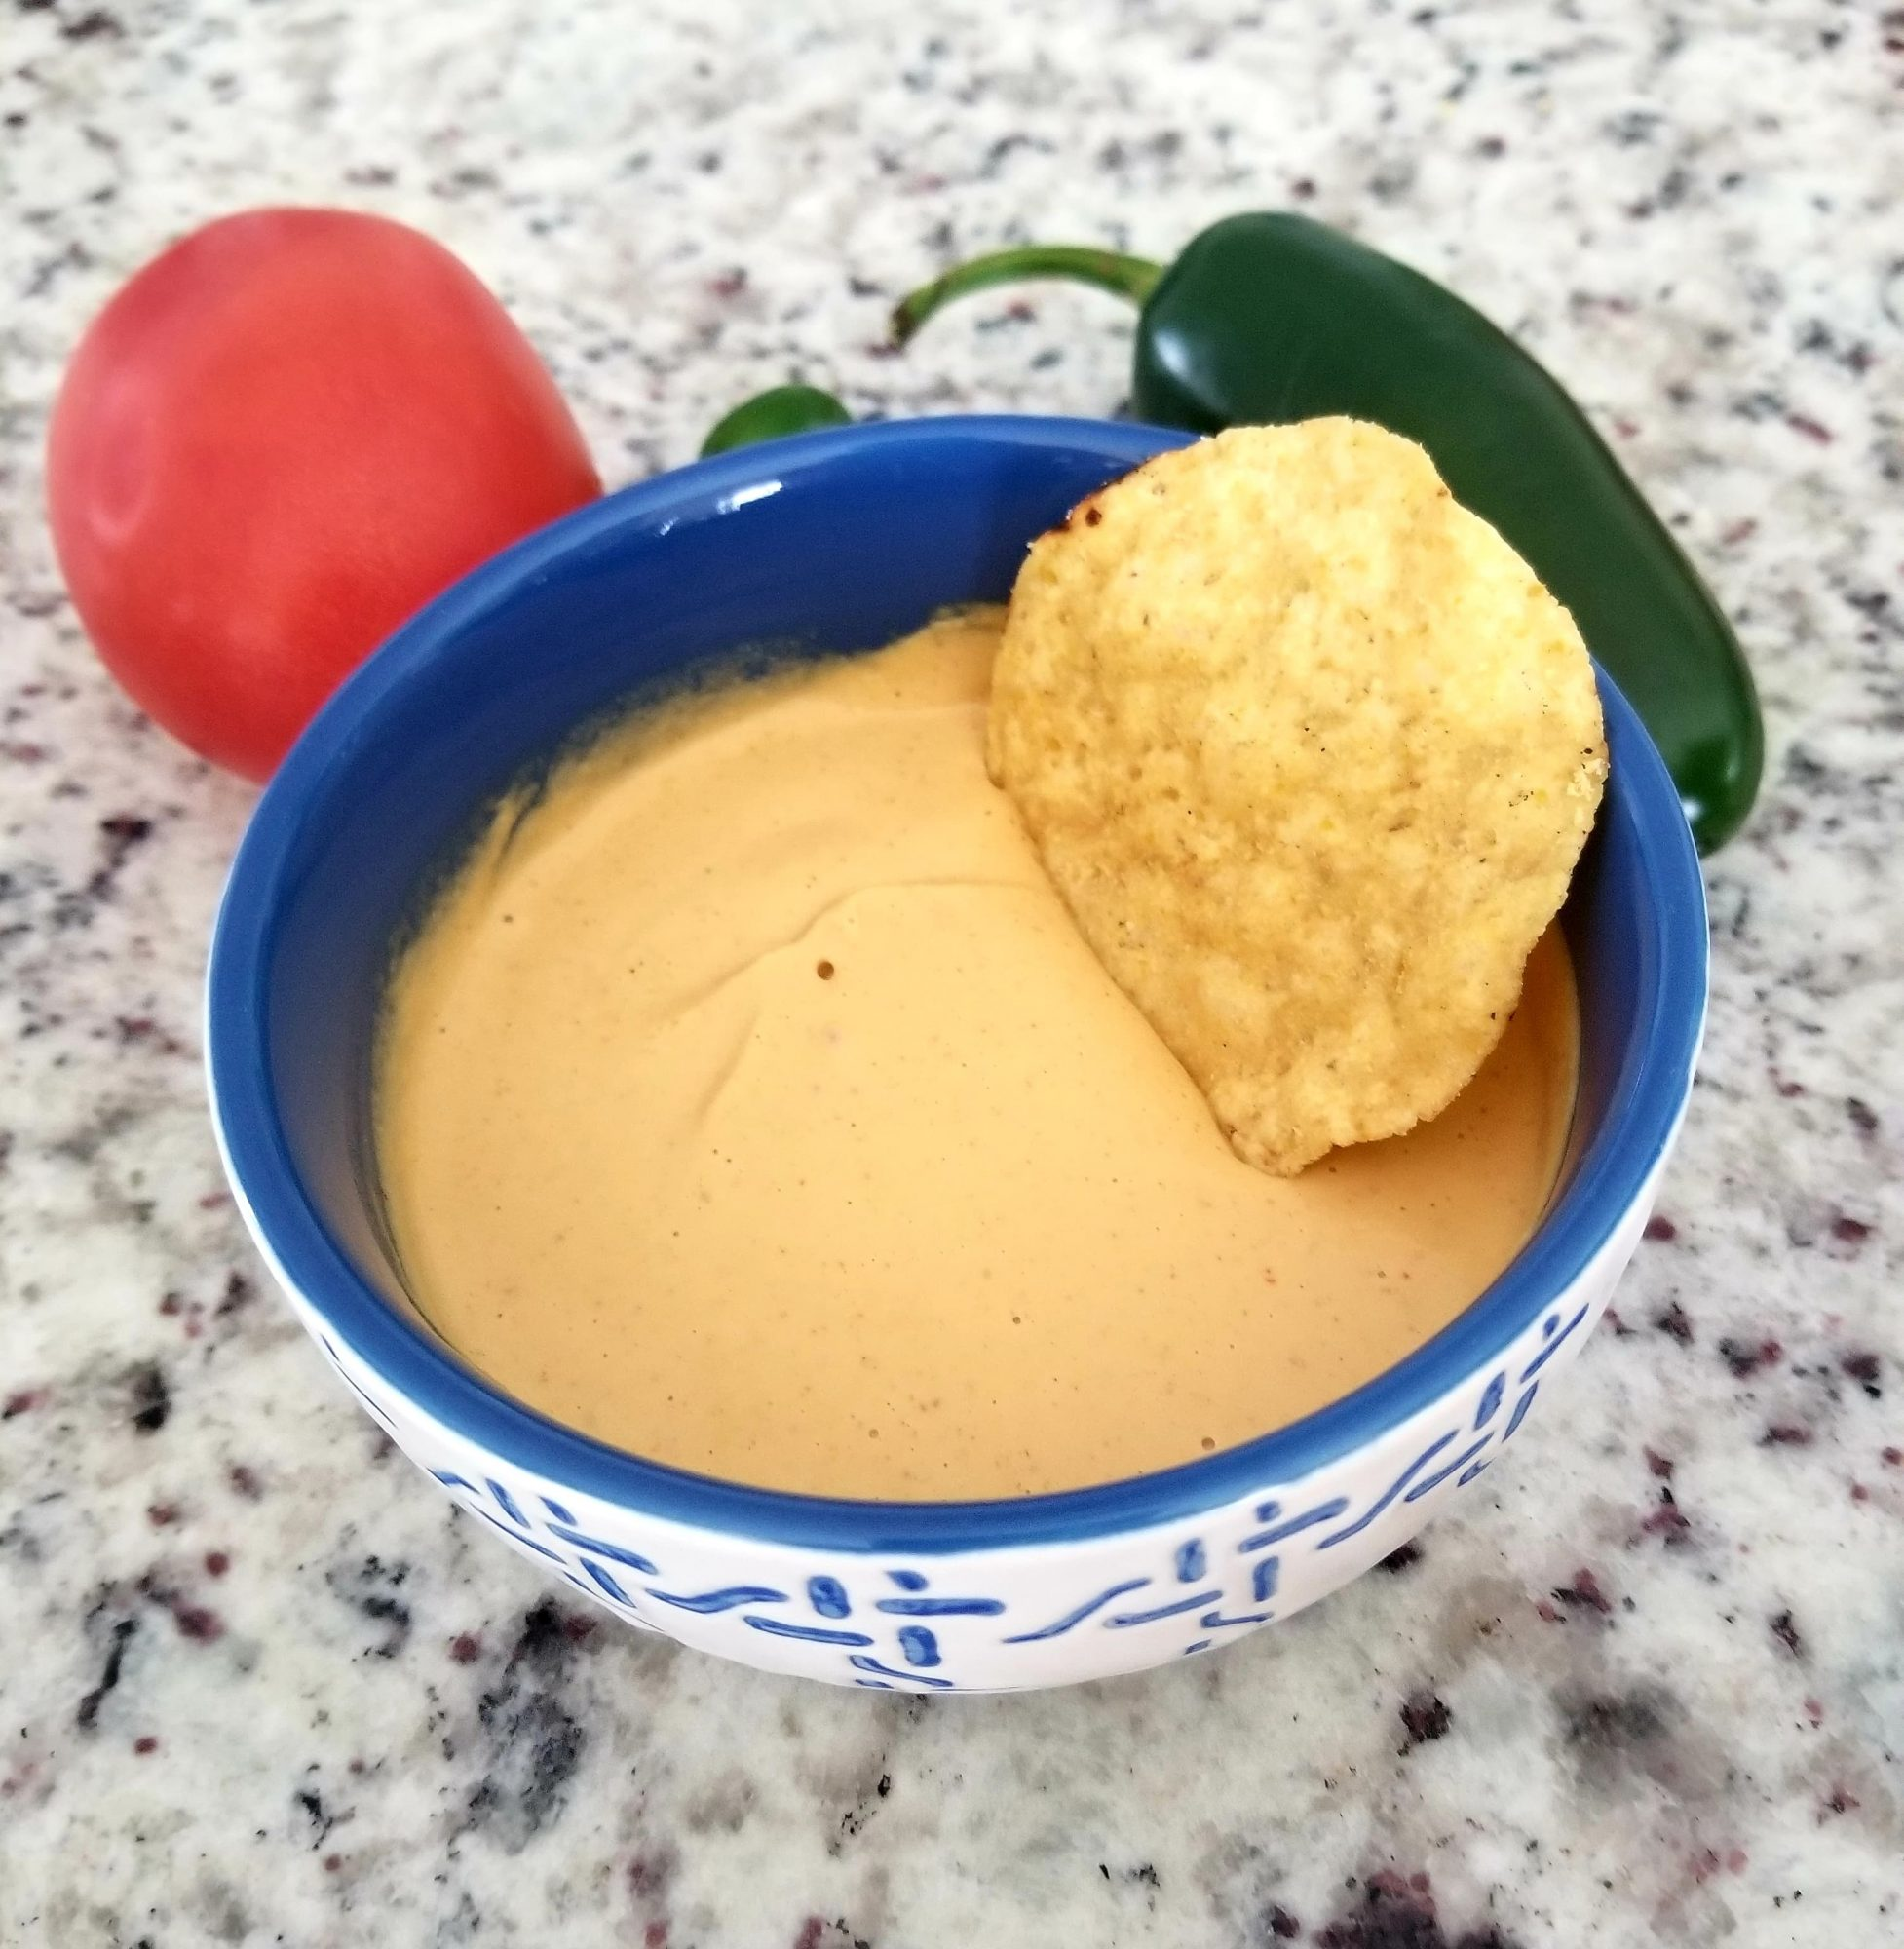 Vegan Queso with chips and veggies